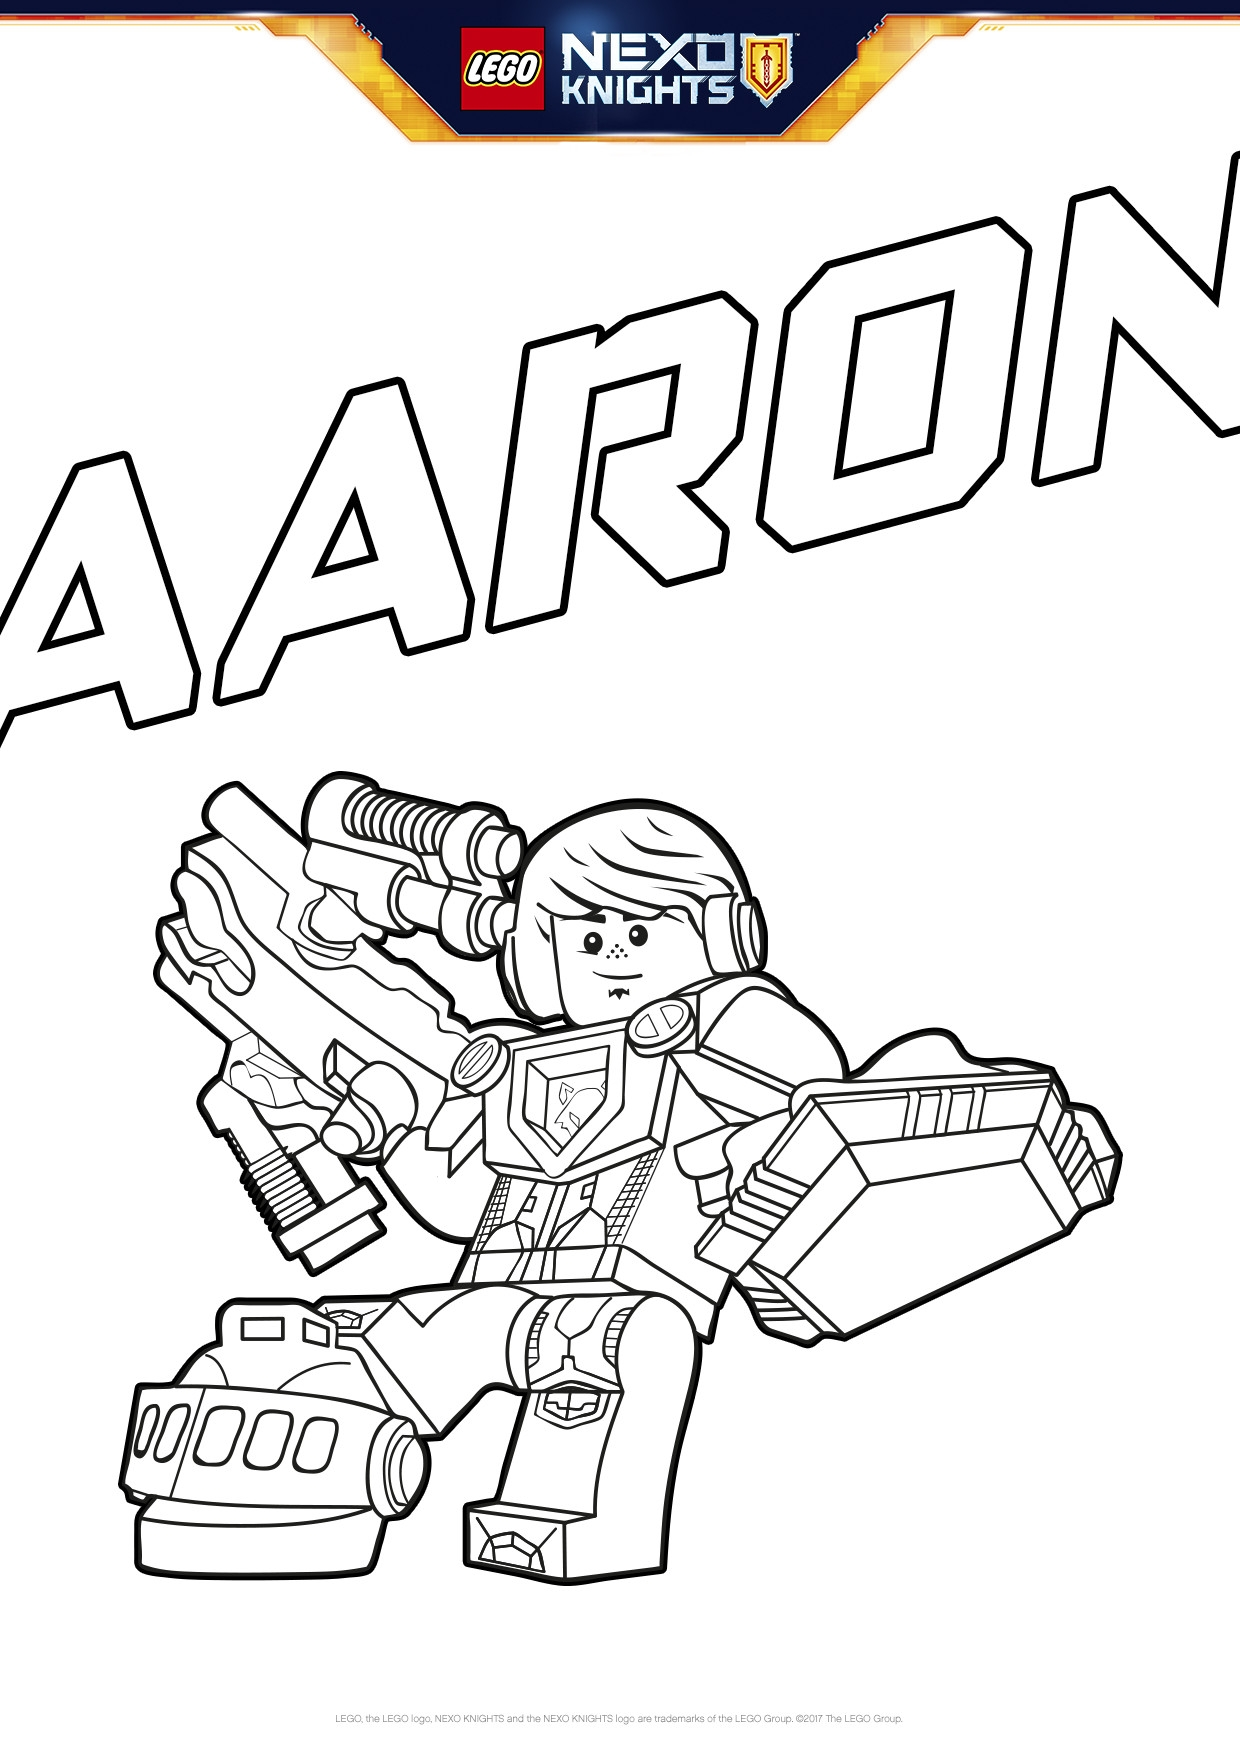 Lego Nexo Knights Ausmalbilder : 24 Nexo Knight Coloring Pages Images Free Coloring Pages Part 2